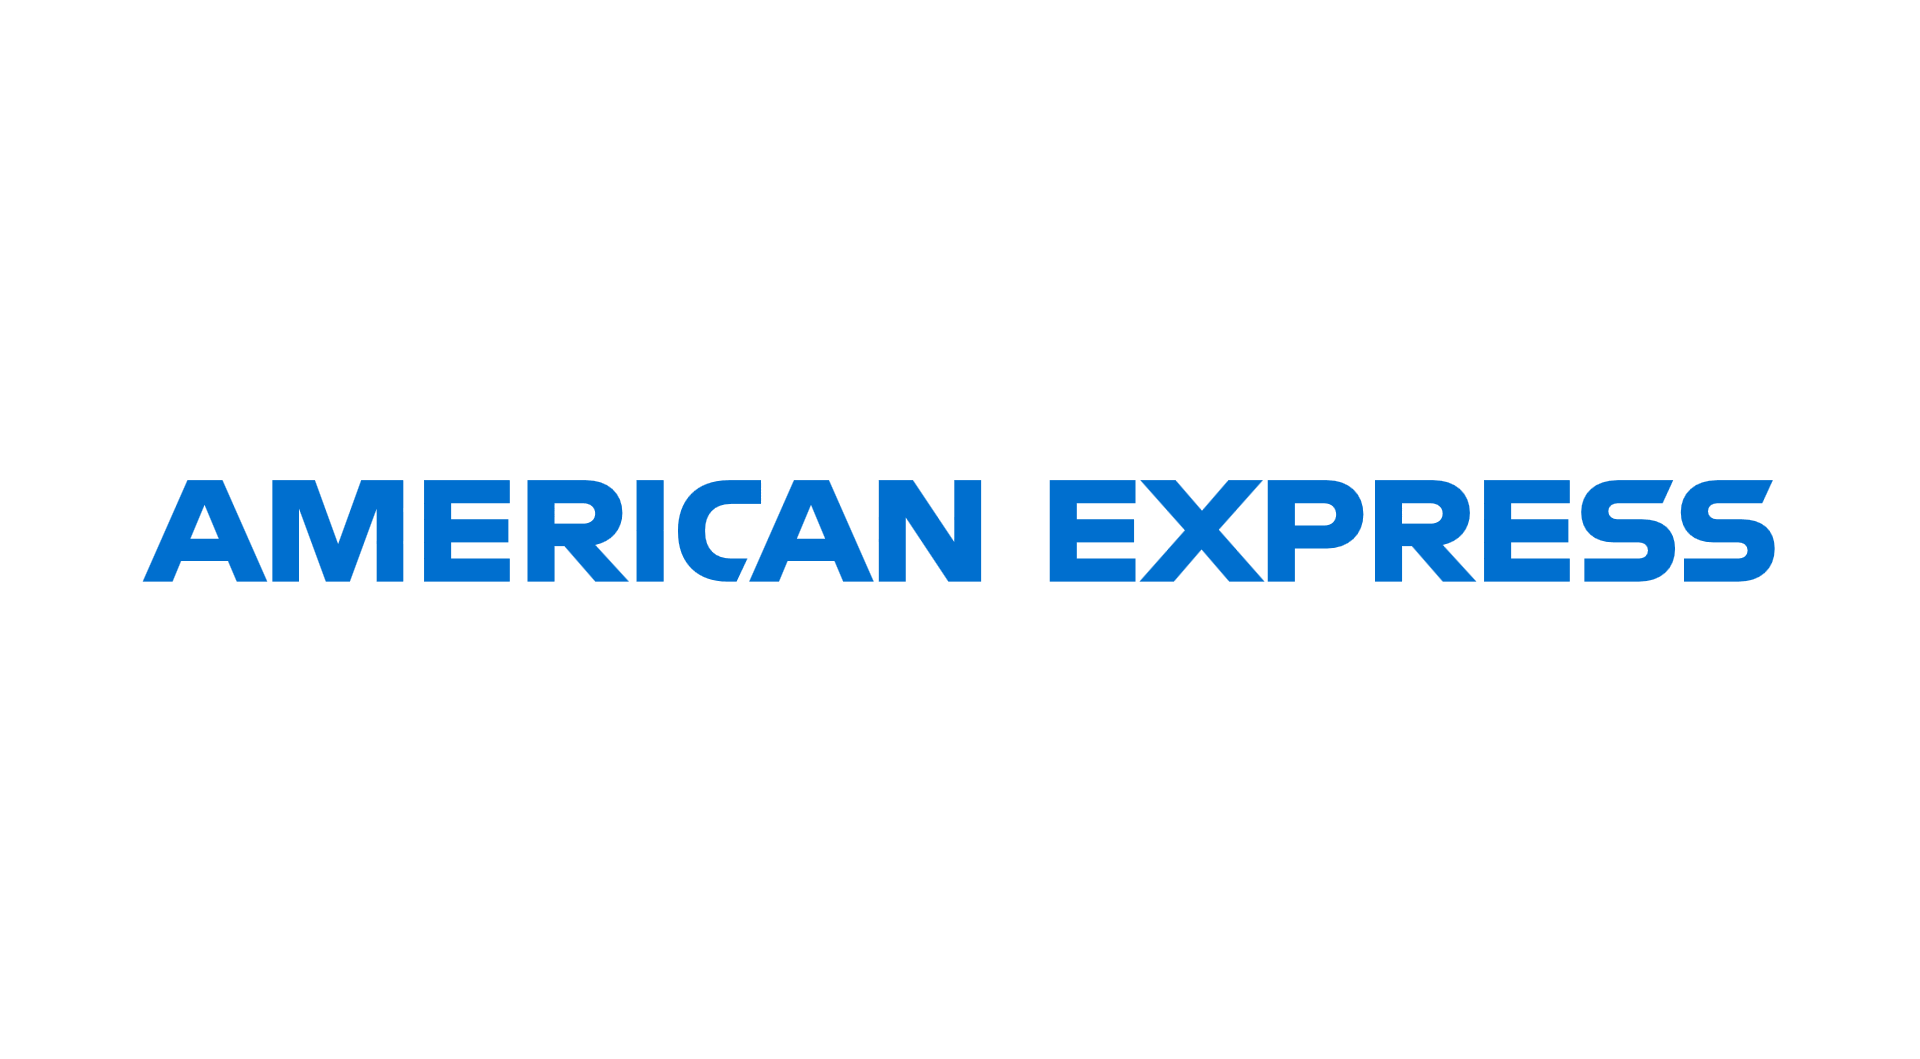 American-Express-Logotype-Single-Line.png